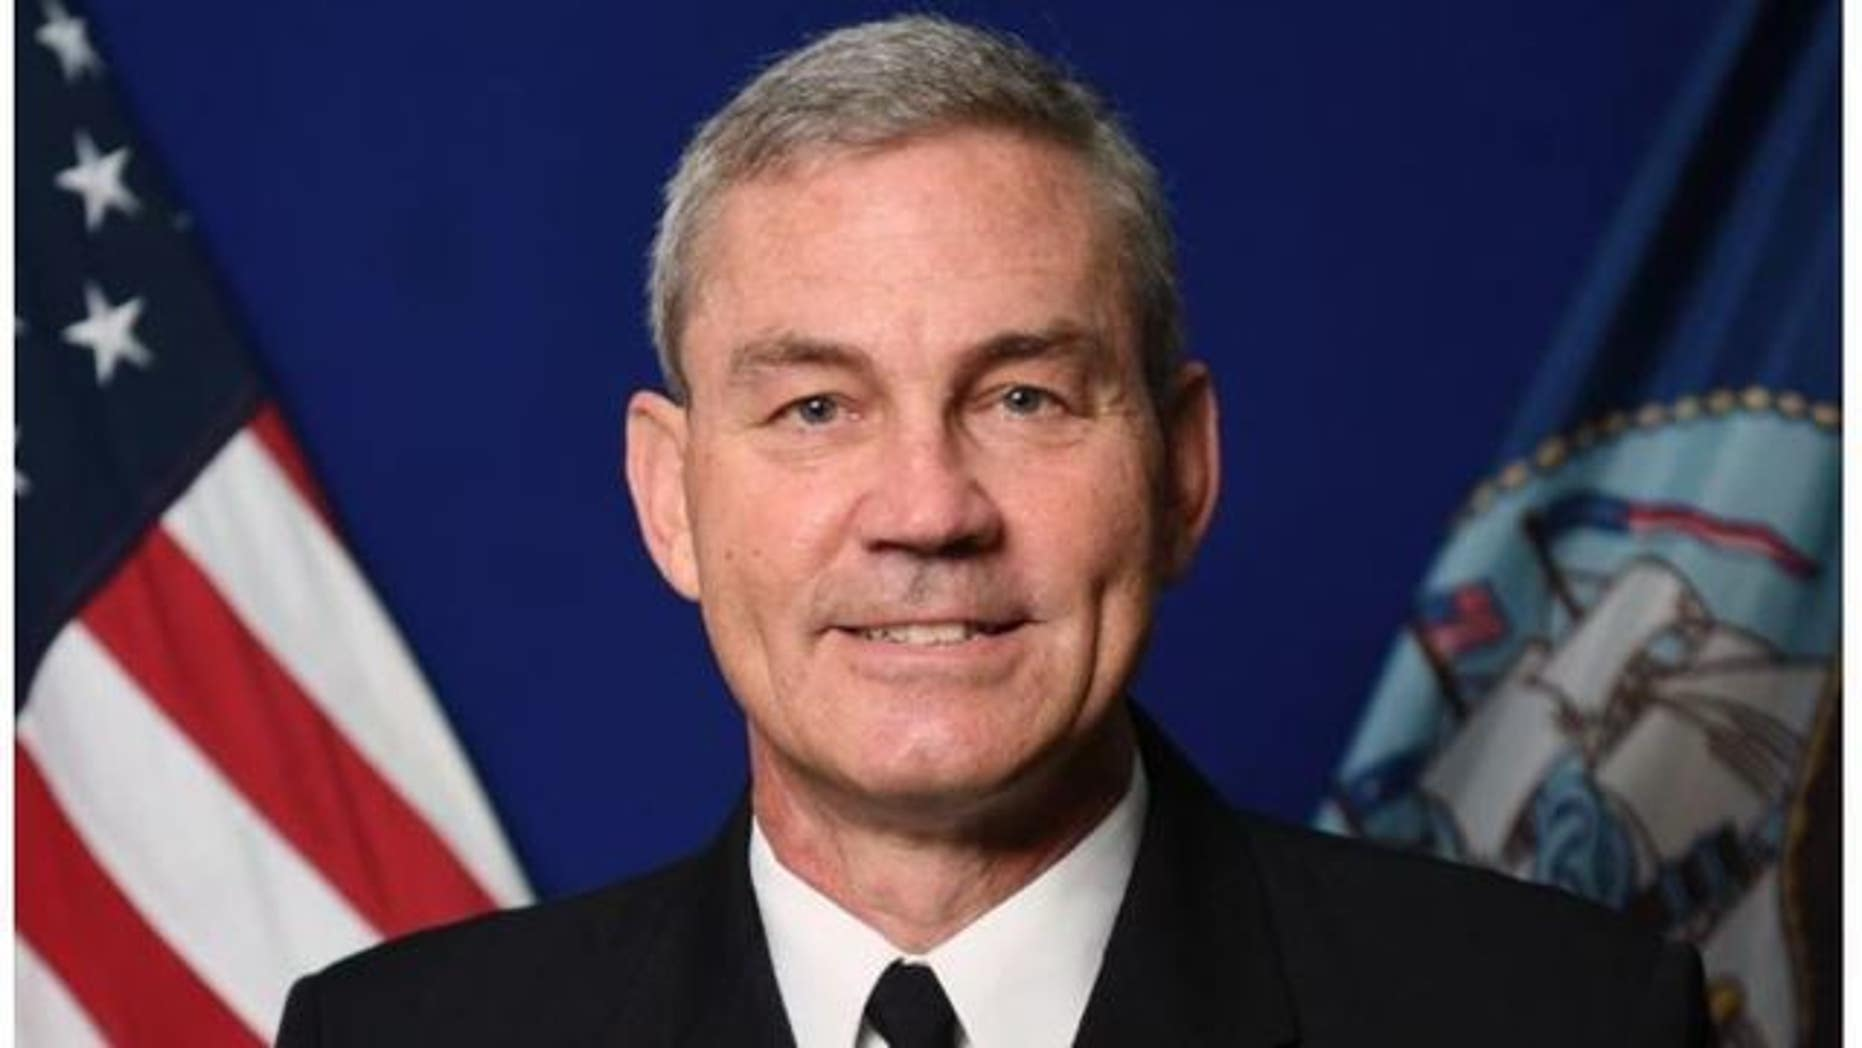 Vice Adm. Scott Stearney, commander of the US Fifth Fleet, had served in the Navy since 1982. (US Navy)